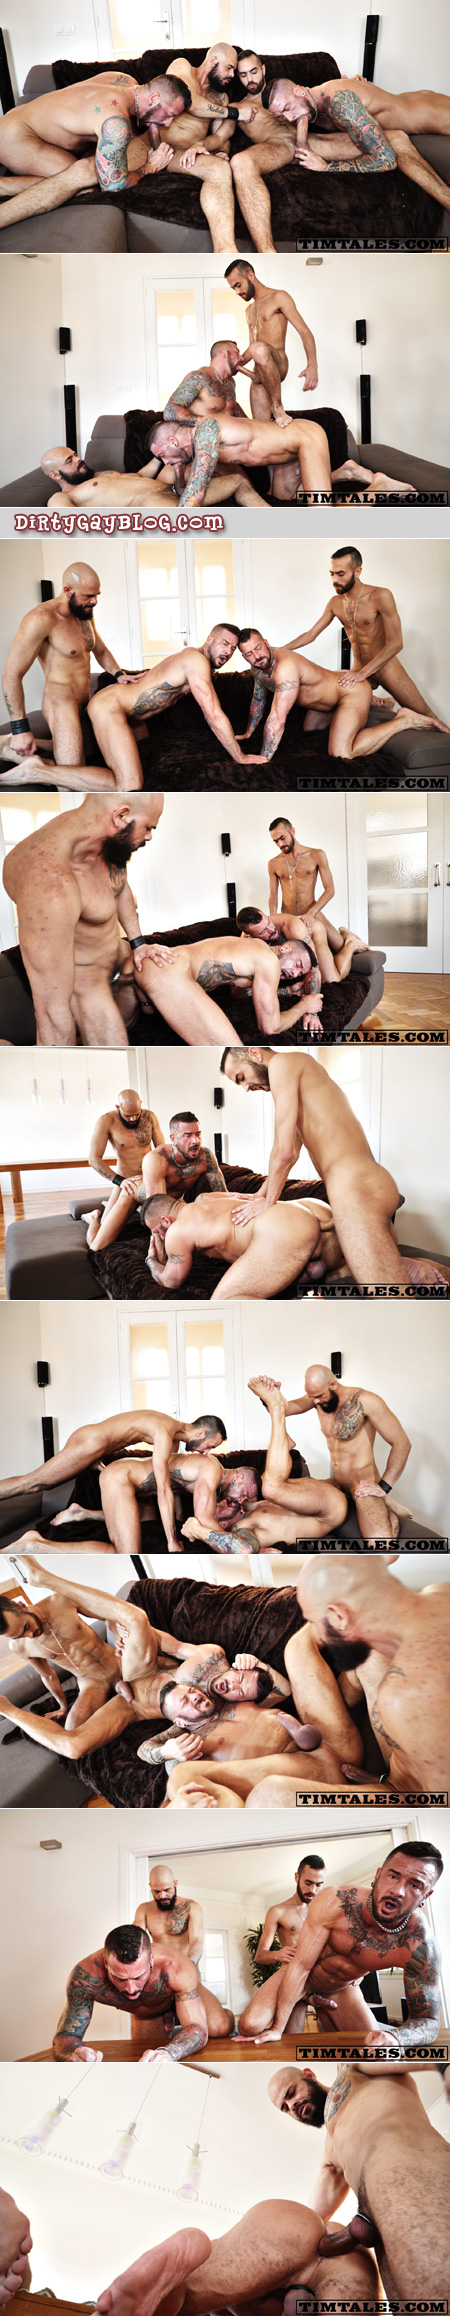 Two muscular, heavily tattooed men getting fucked bareback by two monster cocks.